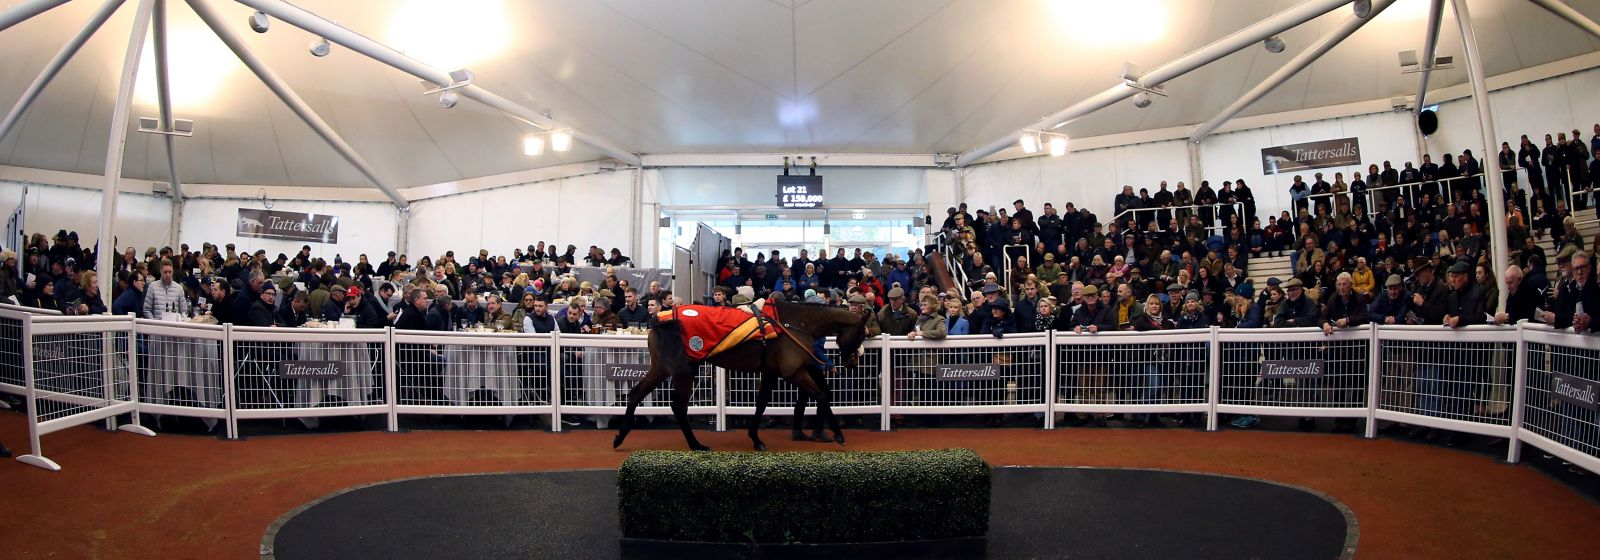 Tattersalls Cheltenham Sales Revised Date